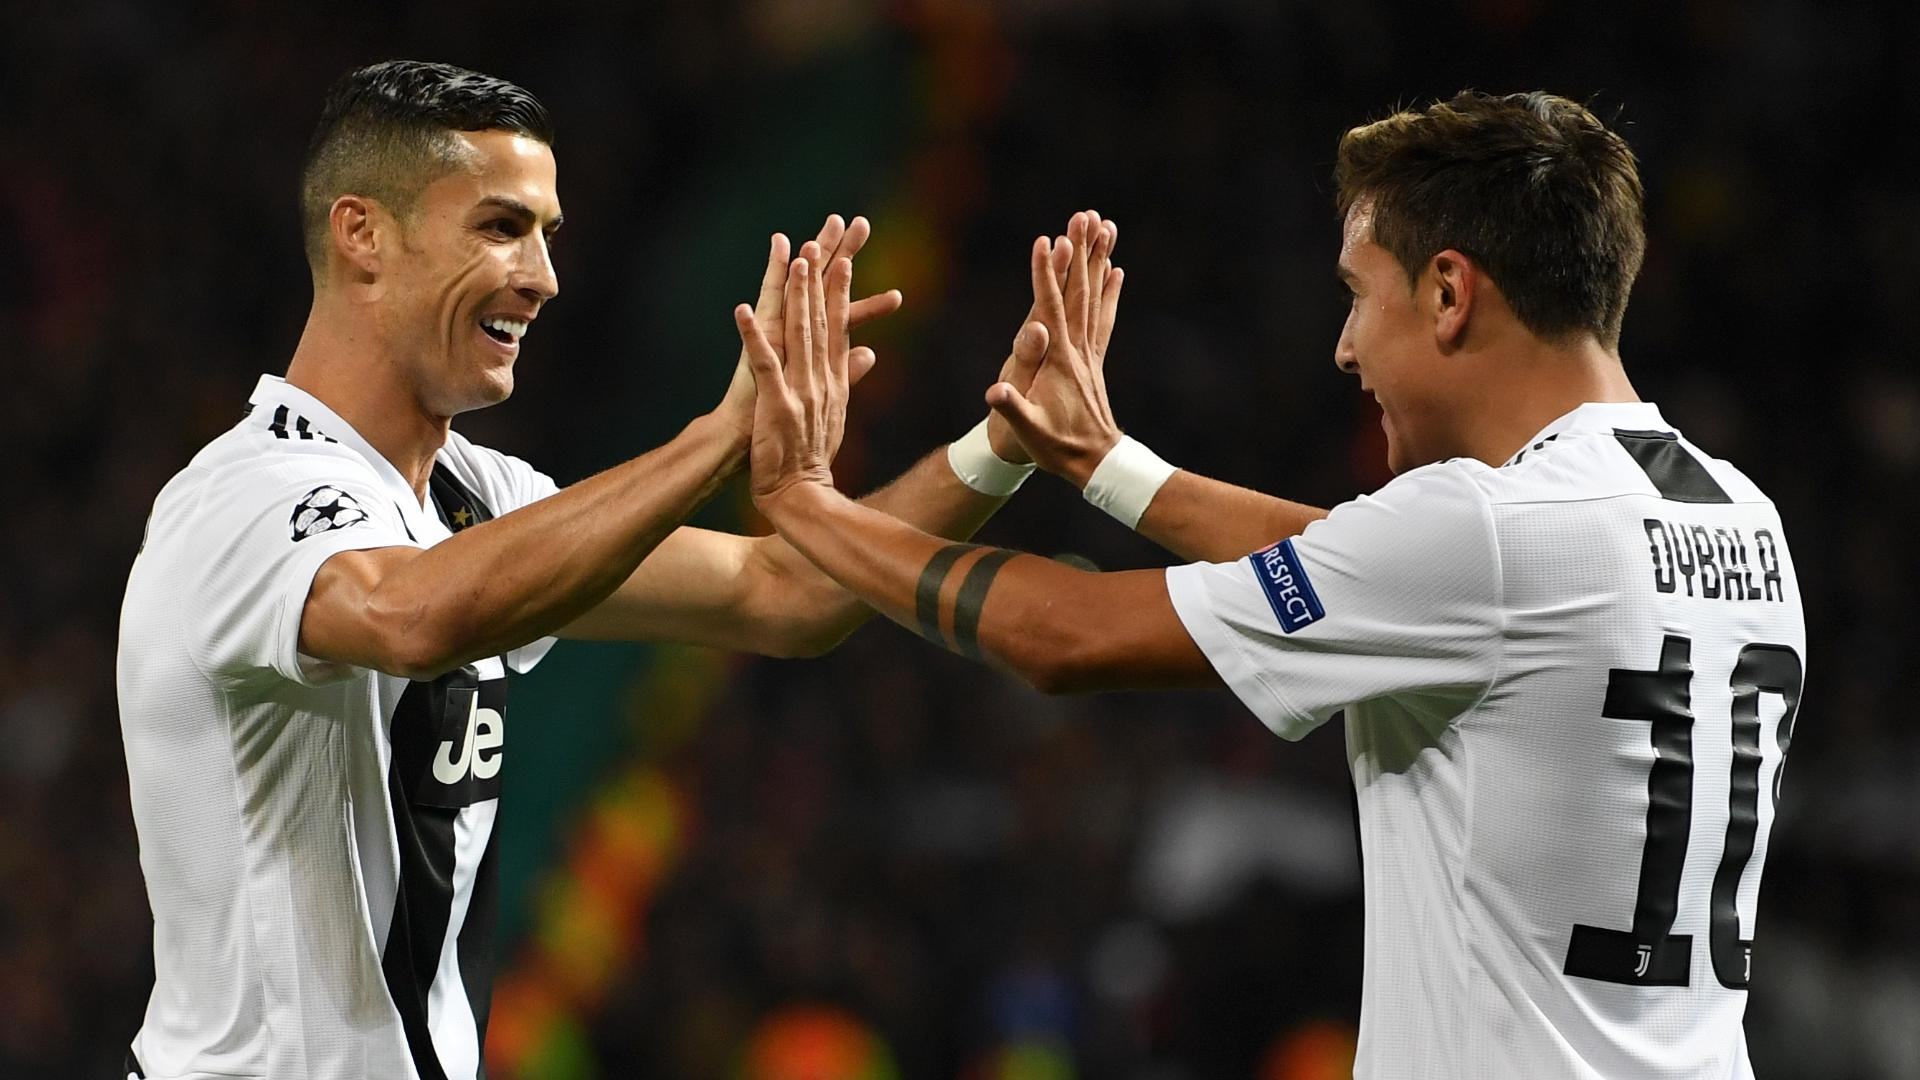 Dybala i didnt insult mourinho and can work well with ronaldo